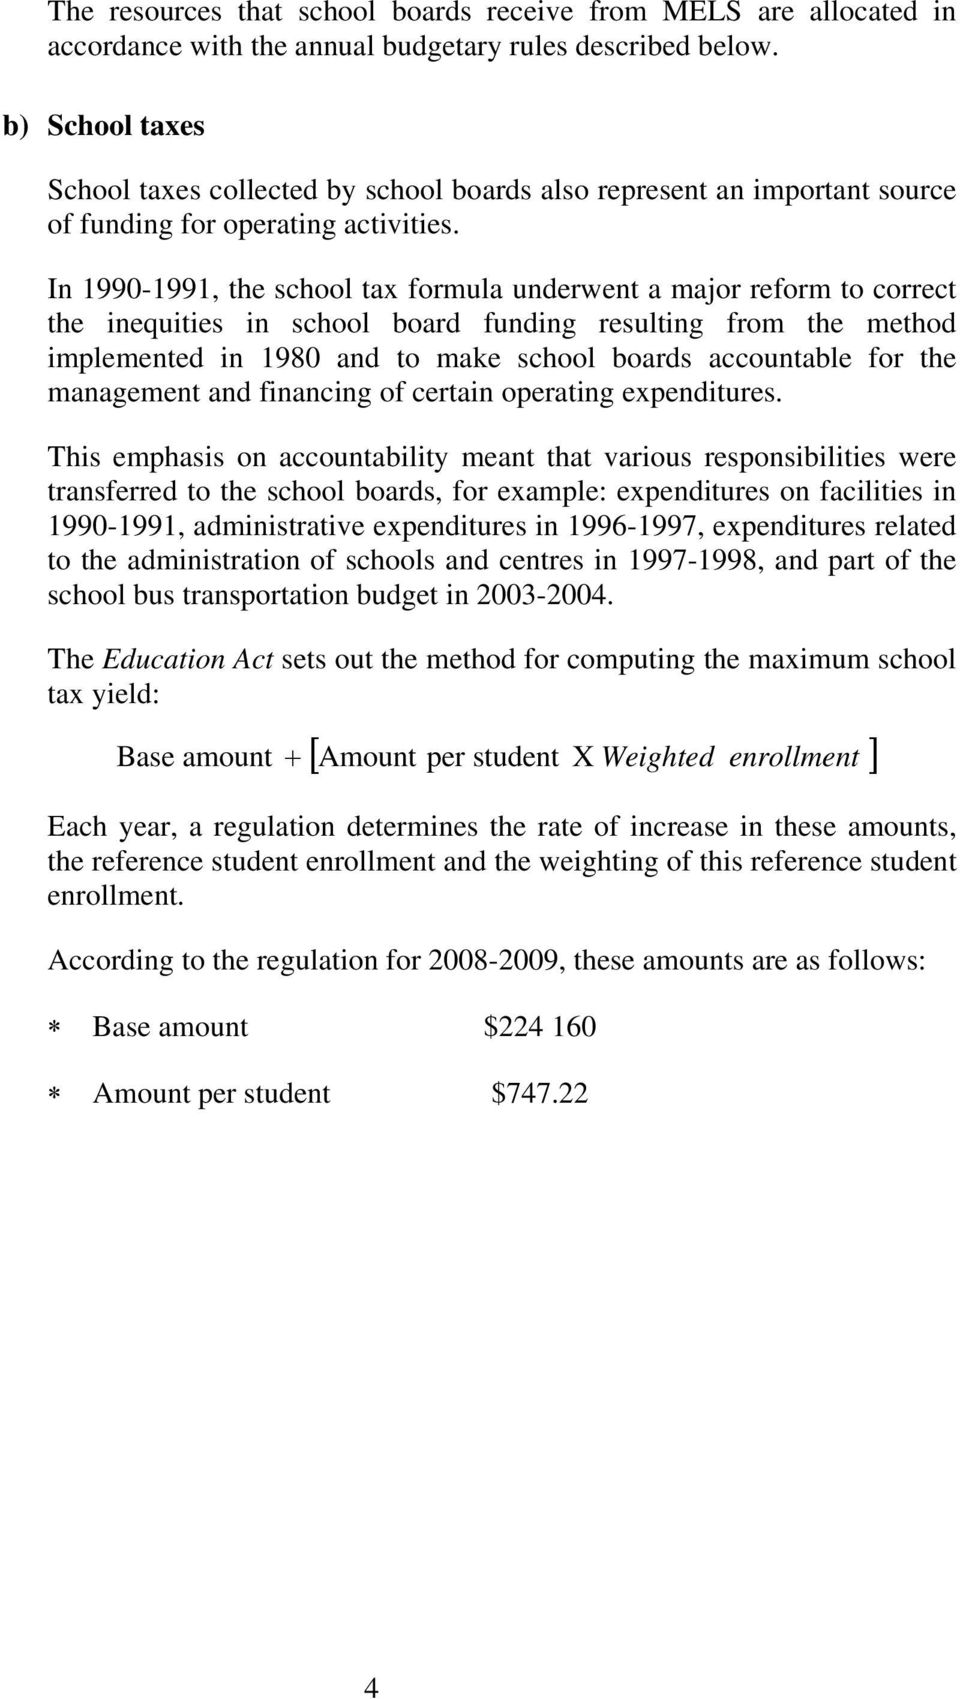 In 1990-1991, the school tax formula underwent a major reform to correct the inequities in school board funding resulting from the method implemented in 1980 and to make school boards accountable for